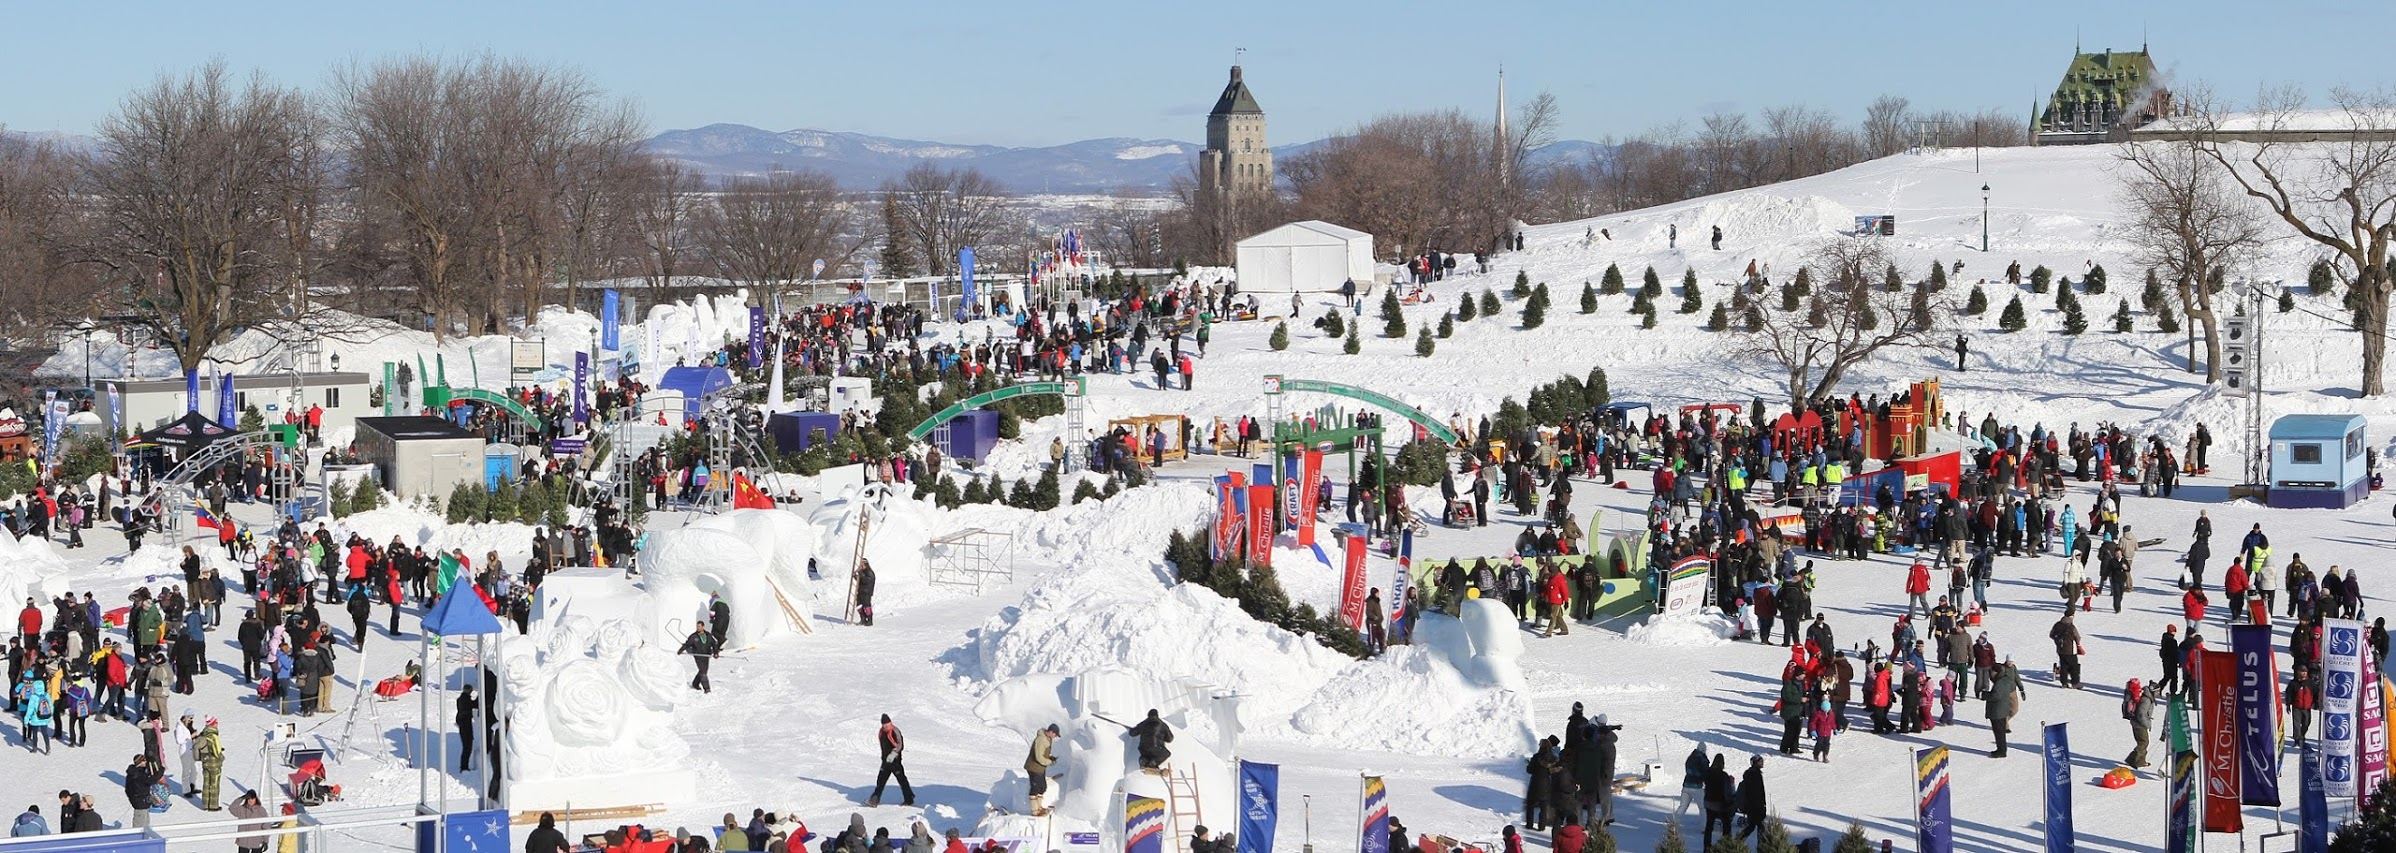 Things Youve Got To Experience At The Quebec Winter Carnival - Quebec winter carnival